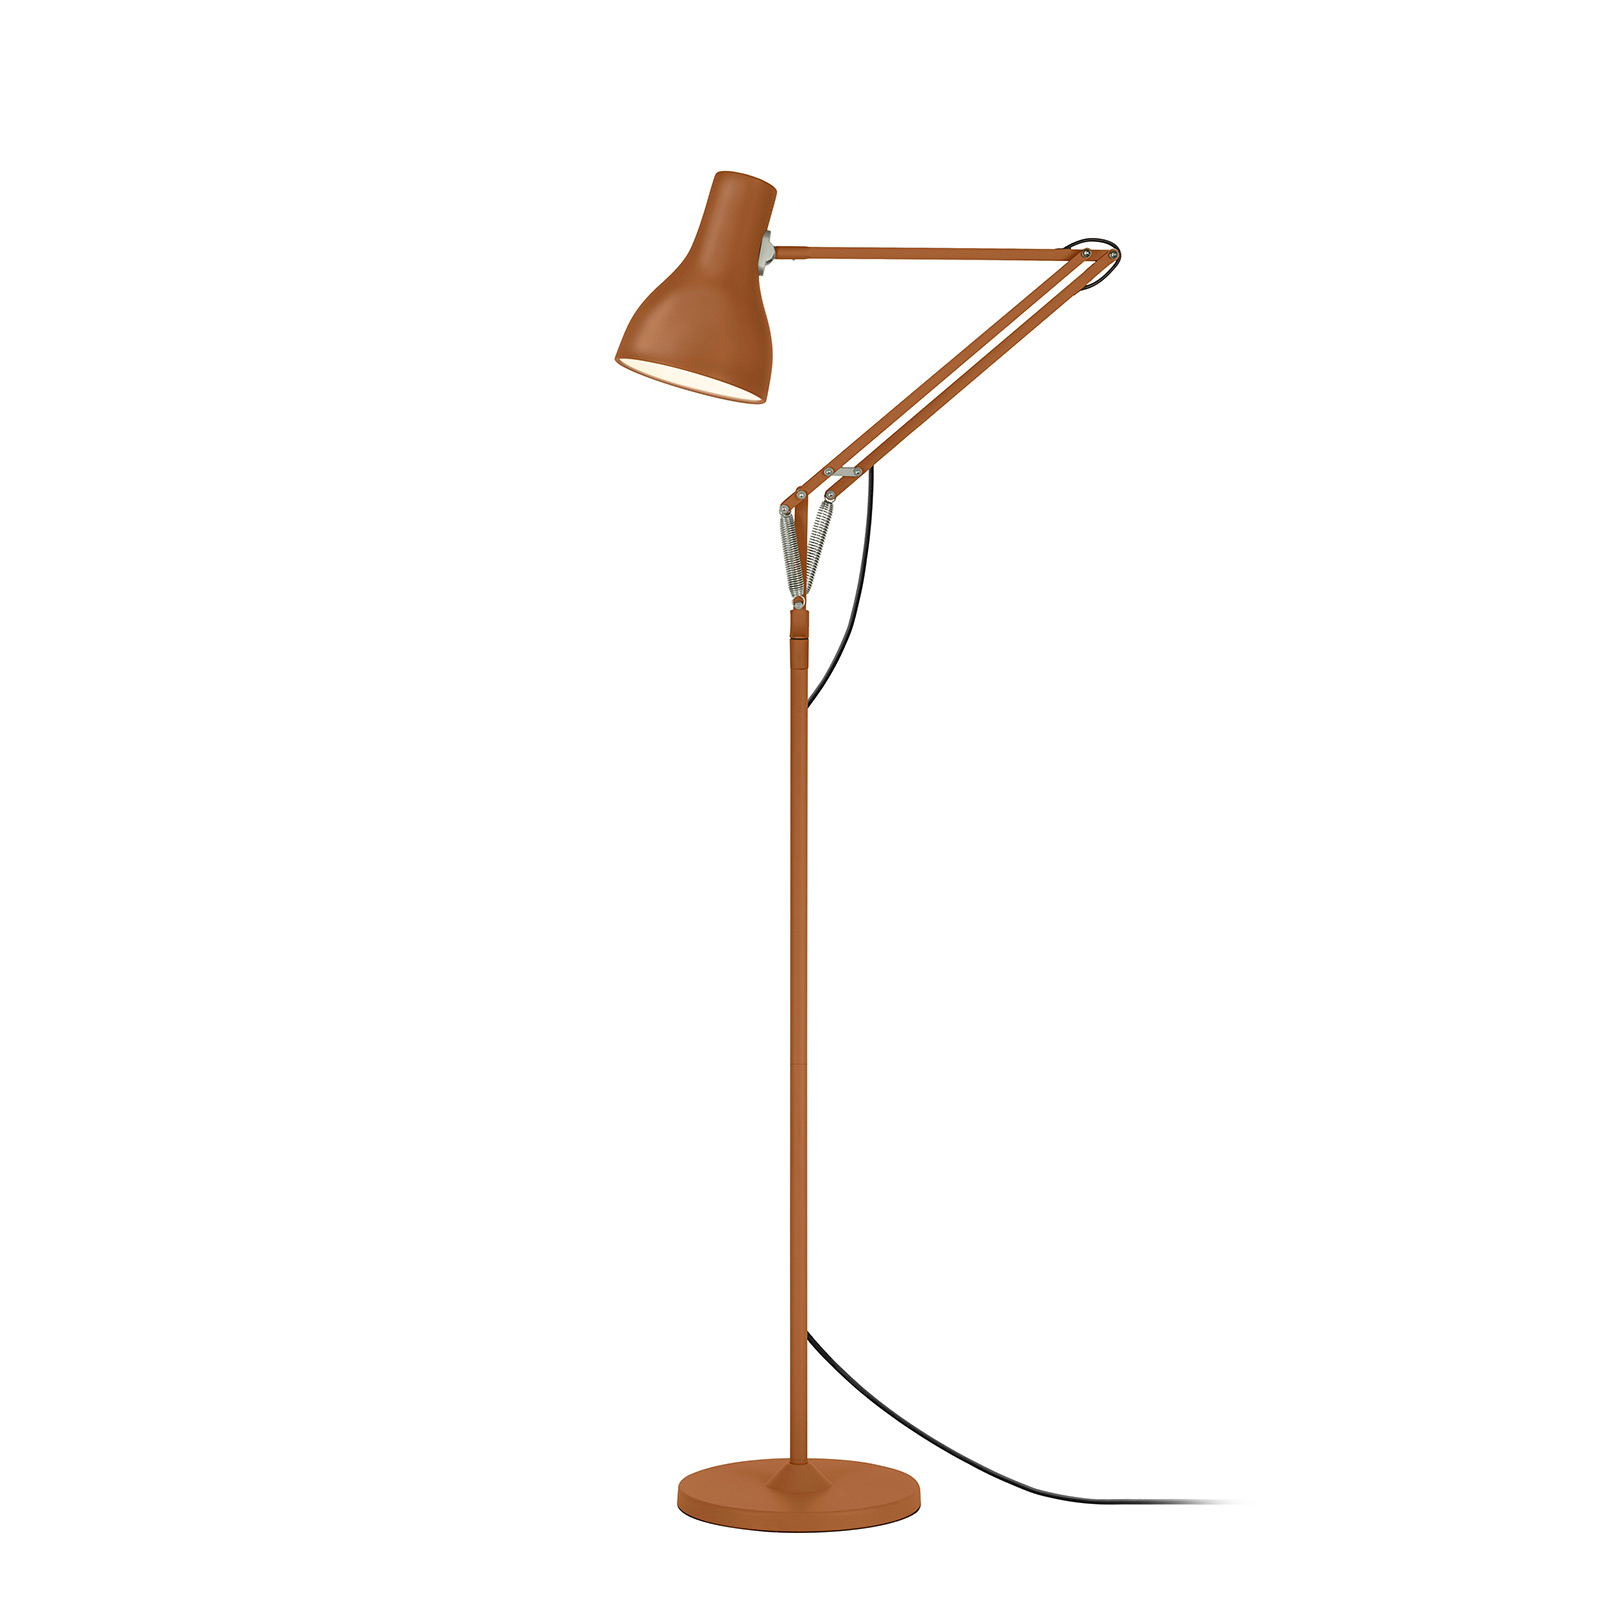 Anglepoise Type 75 lampad. Margaret Howell rouille